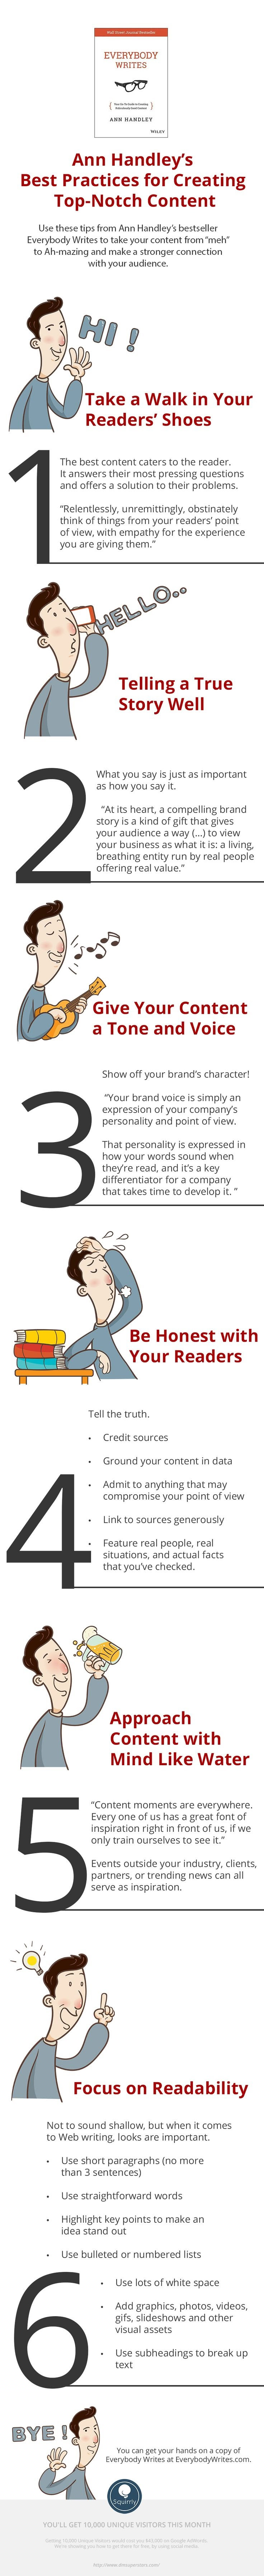 Ann Handley's Best Practices for Creating Top Notch Content - #infographic